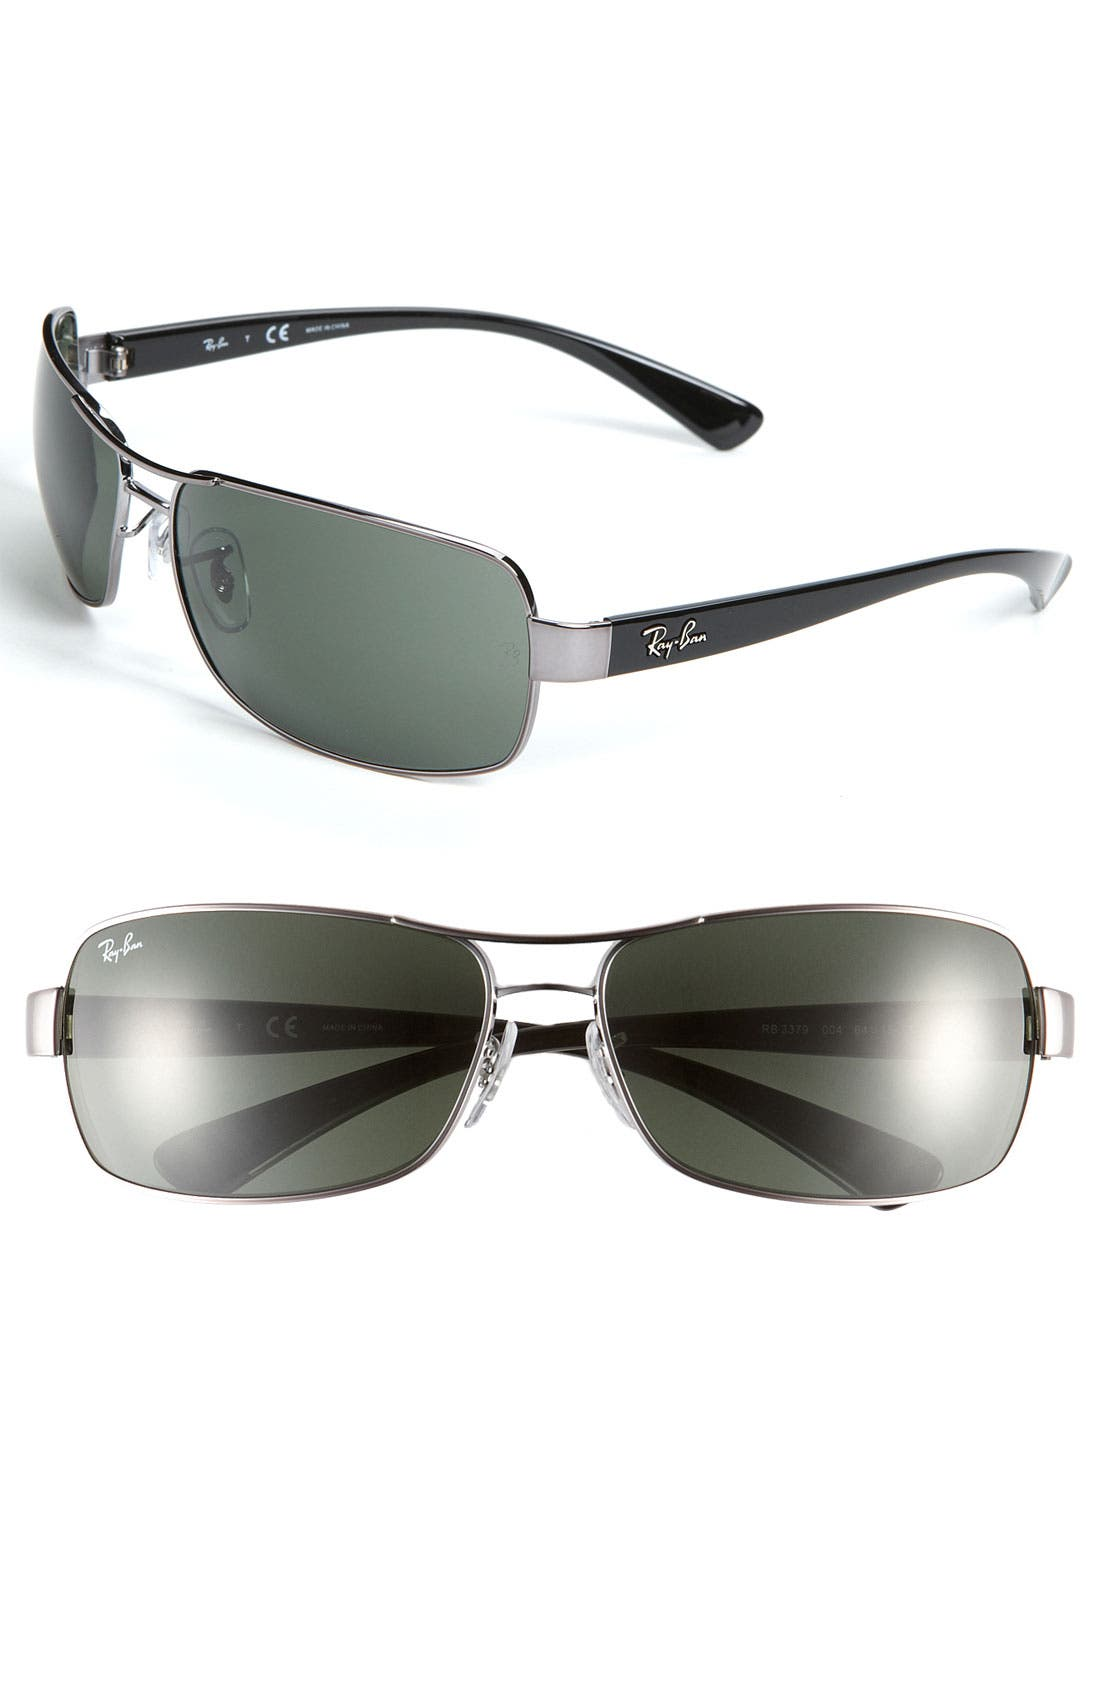 Main Image - Ray-Ban 64mm Wrap Sunglasses